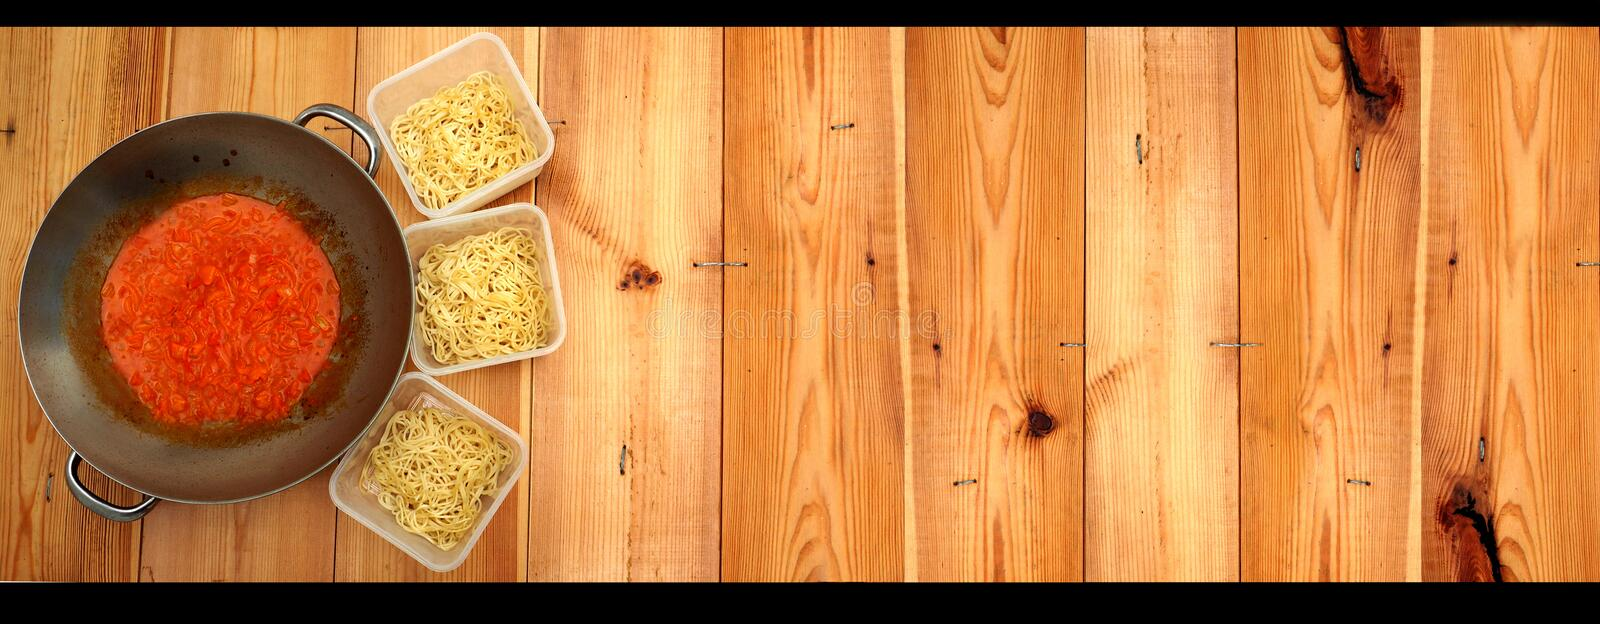 Spaghetti in box and sauce in pan on background wood. I`m cooking to frying a spaghetti sauce in stainless steel pan and spaghetti in three plastic boxes, Design stock images